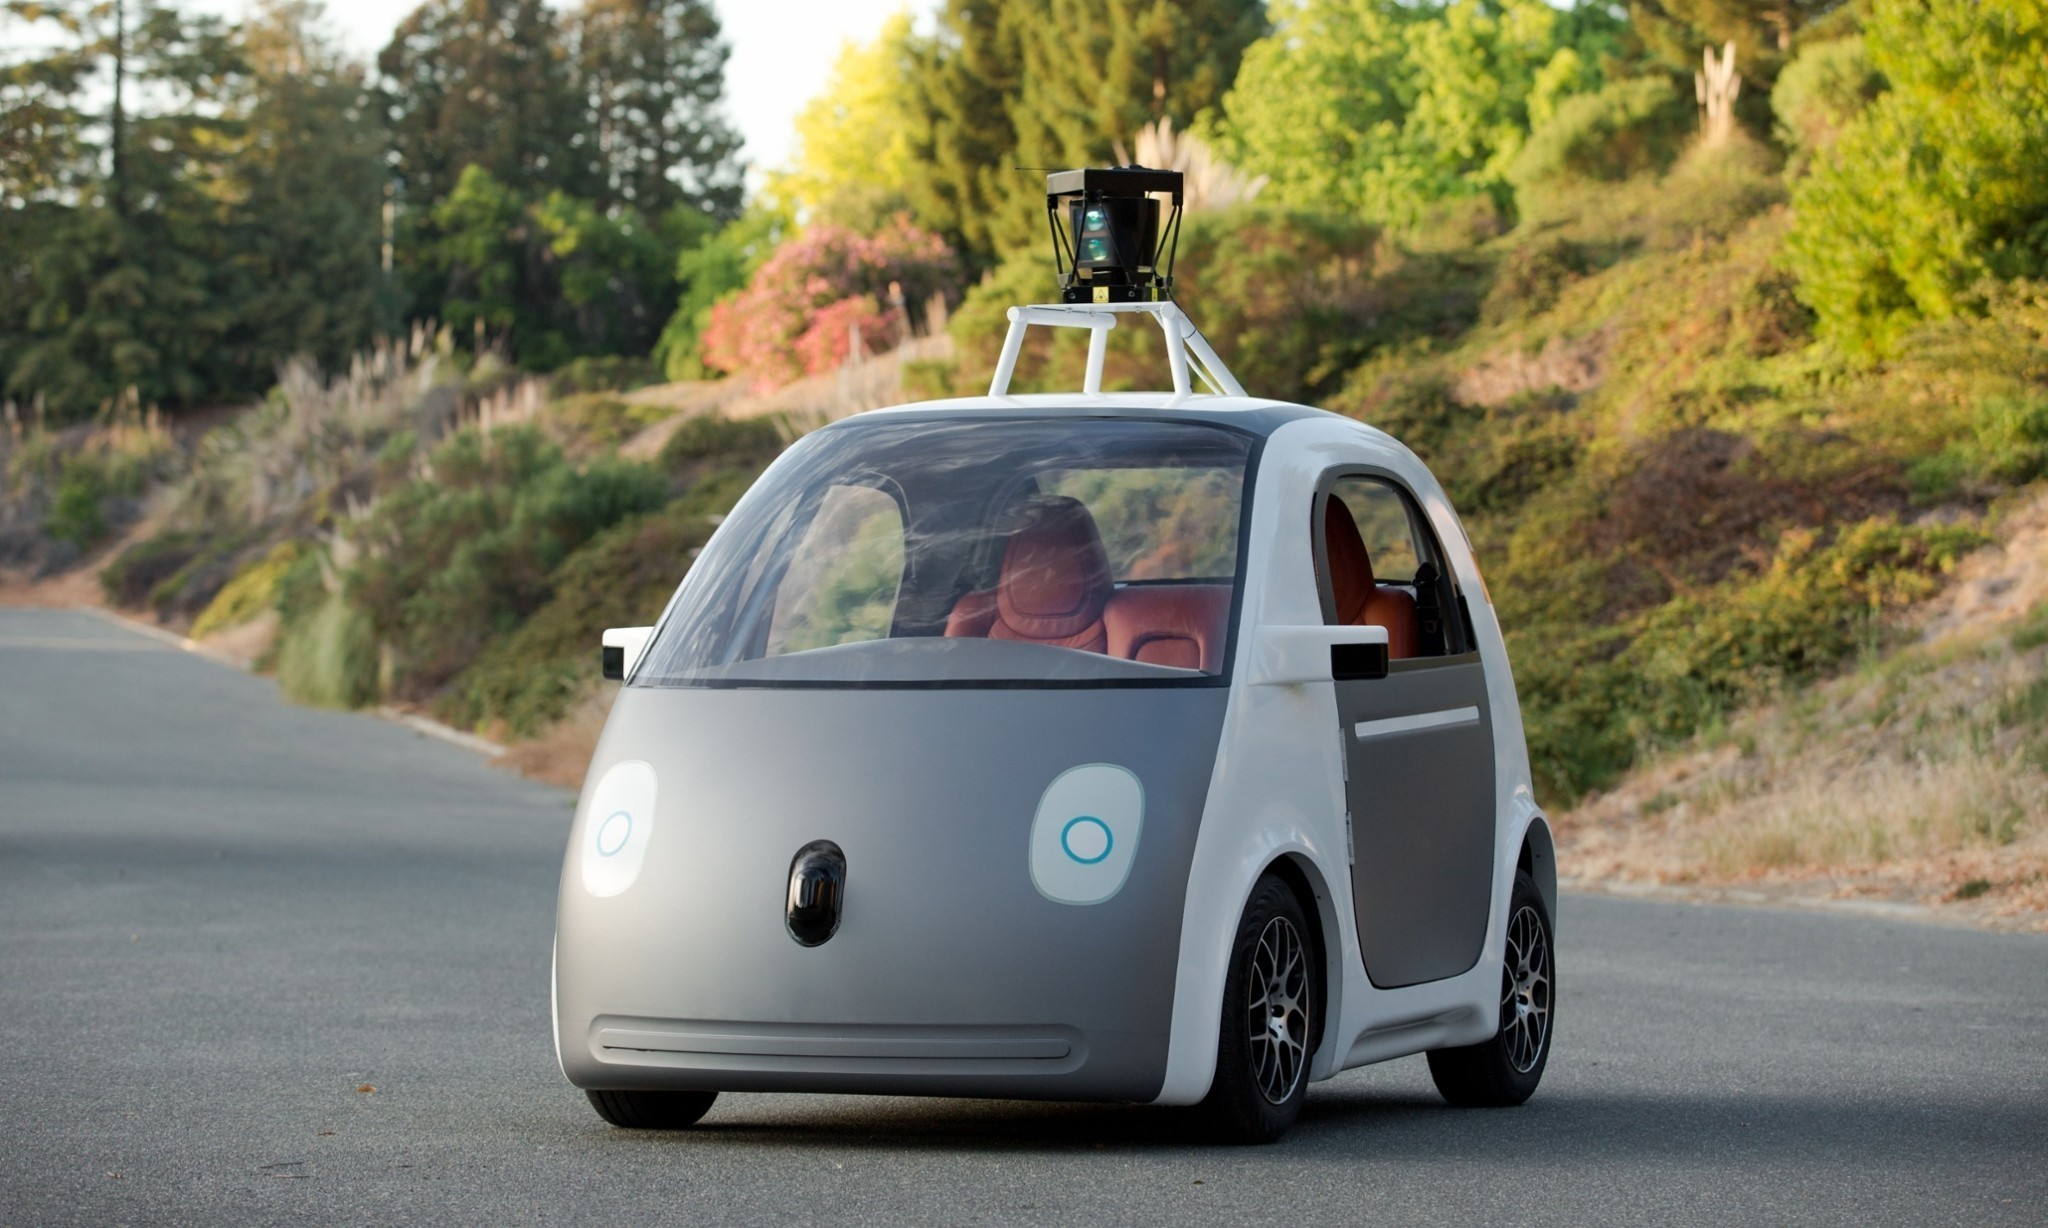 Google's prototype self-driving car will have a steering wheel after all